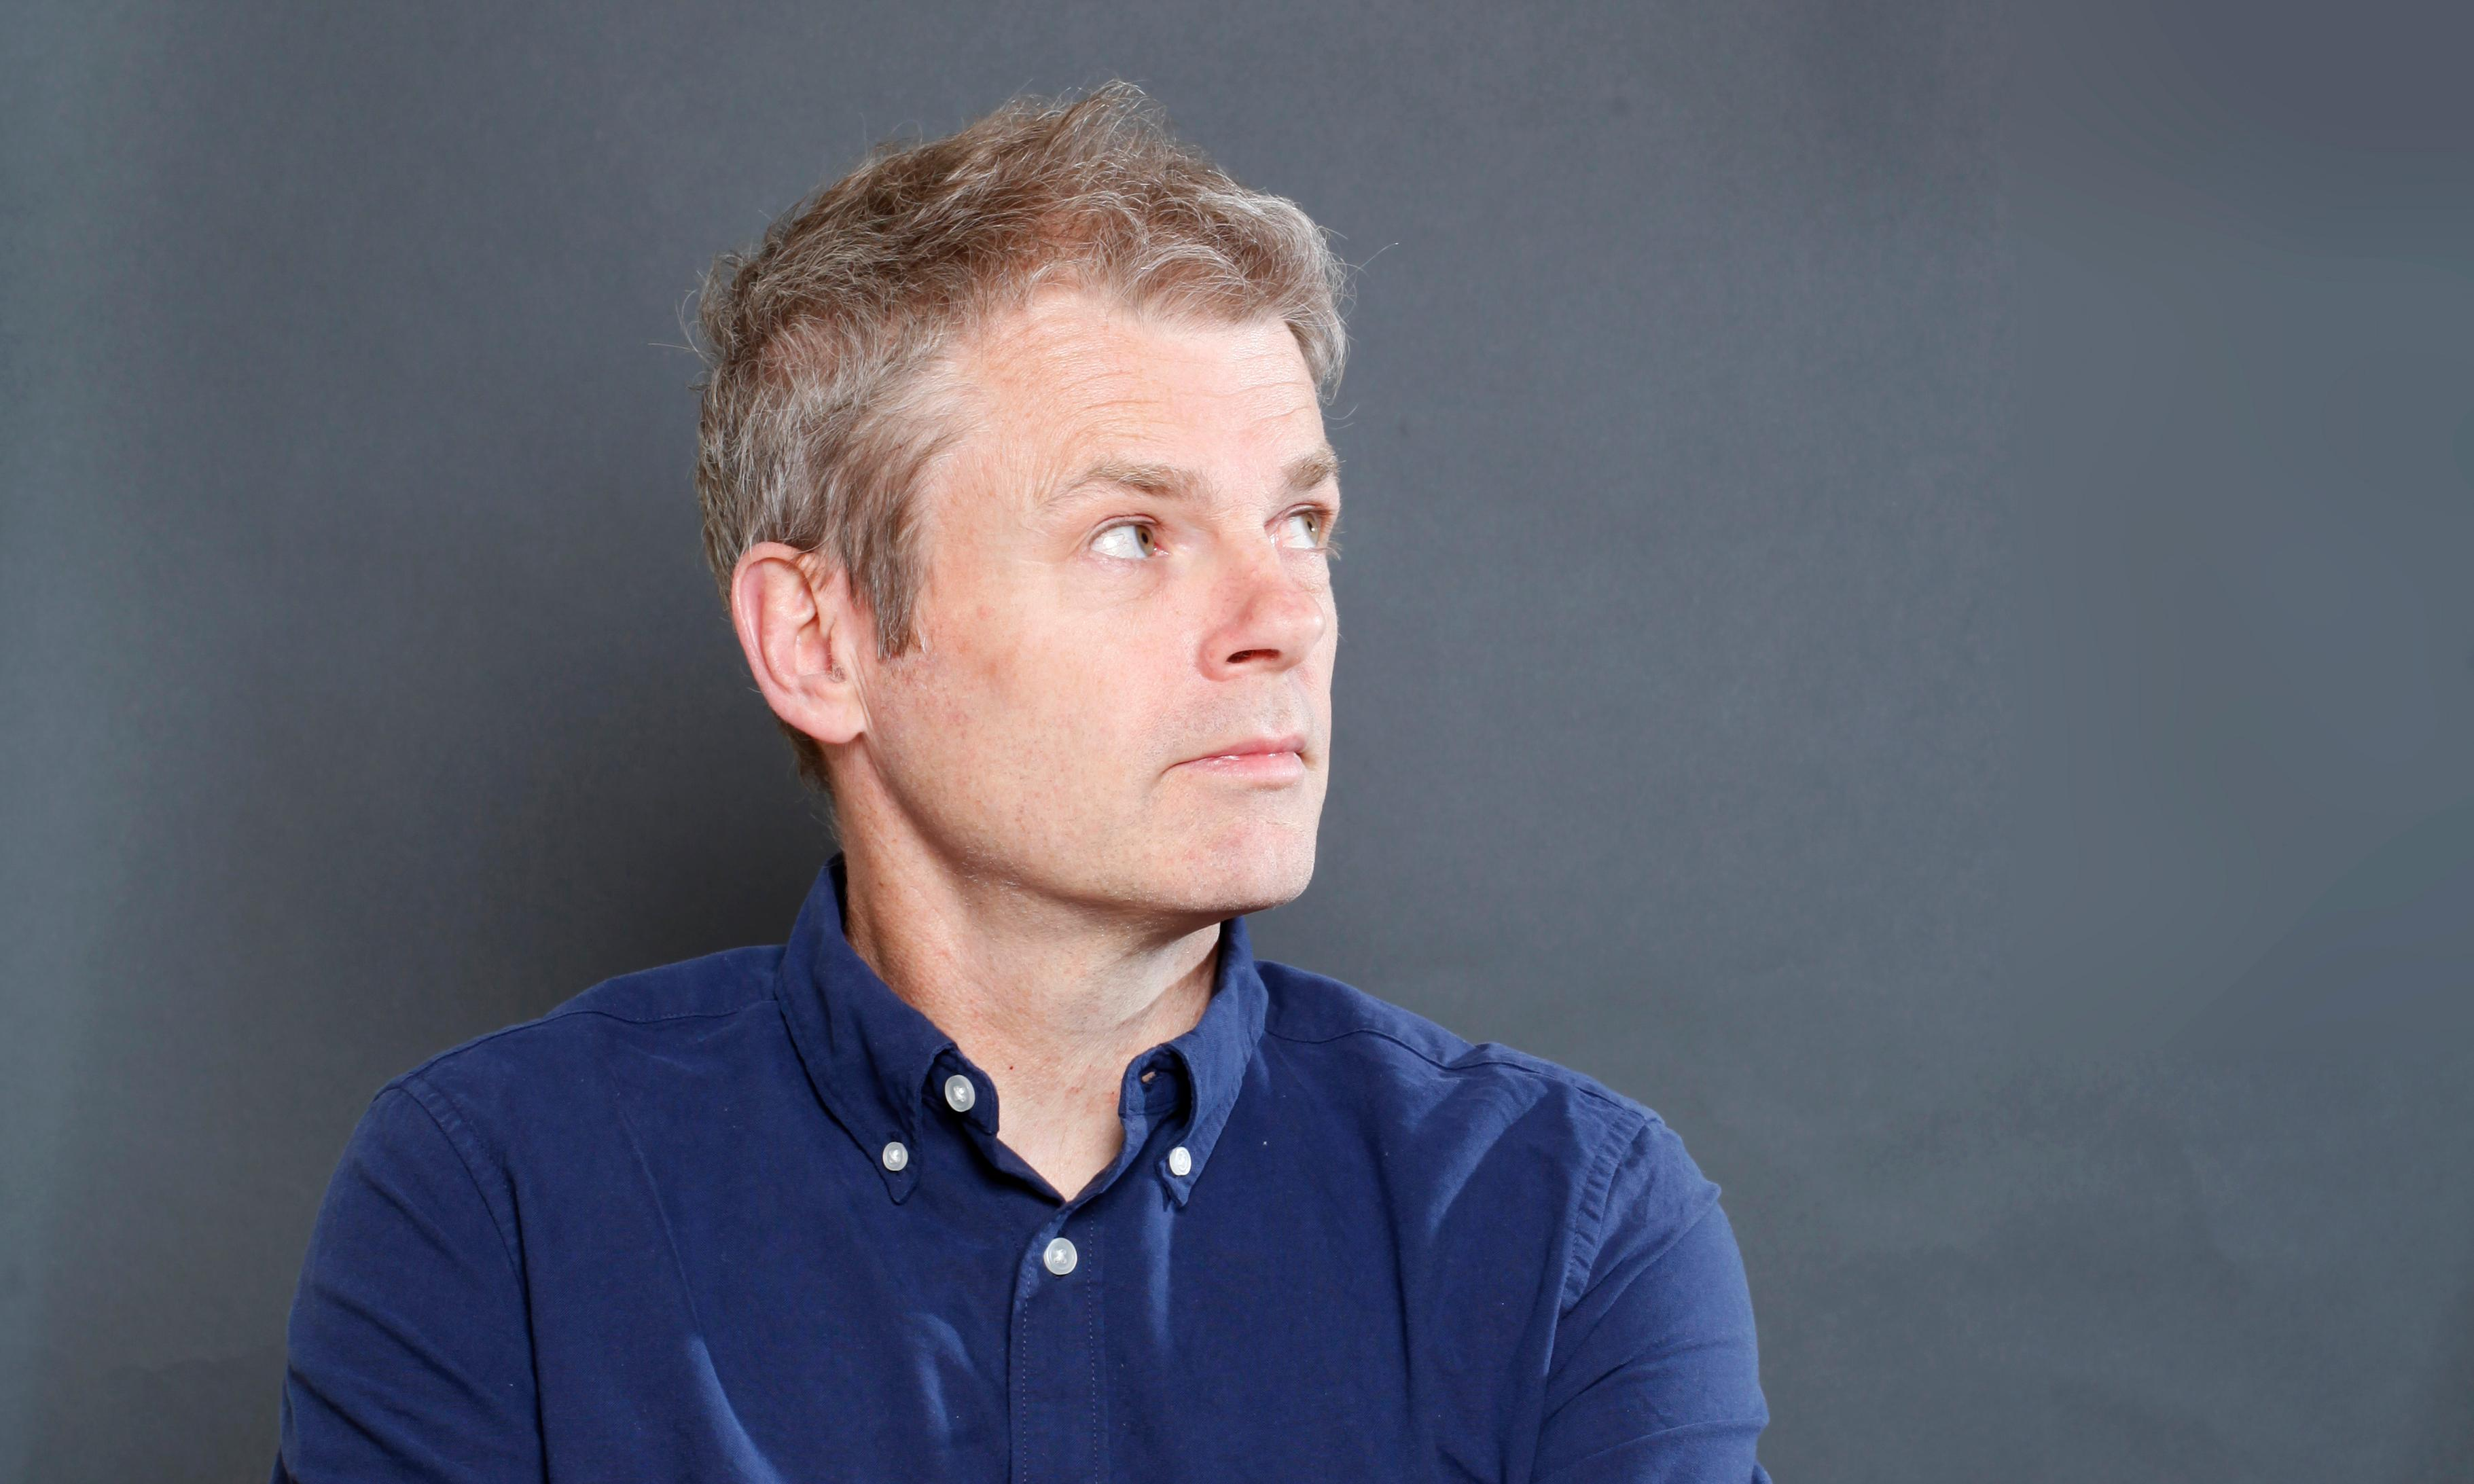 mark haddonn research paper Research indicates that mark haddon was born in 1962 in northampton he graduated in 1981 with a ba in english at merton college, oxford he then graduated in literature in english in edinburgh university for his masters.